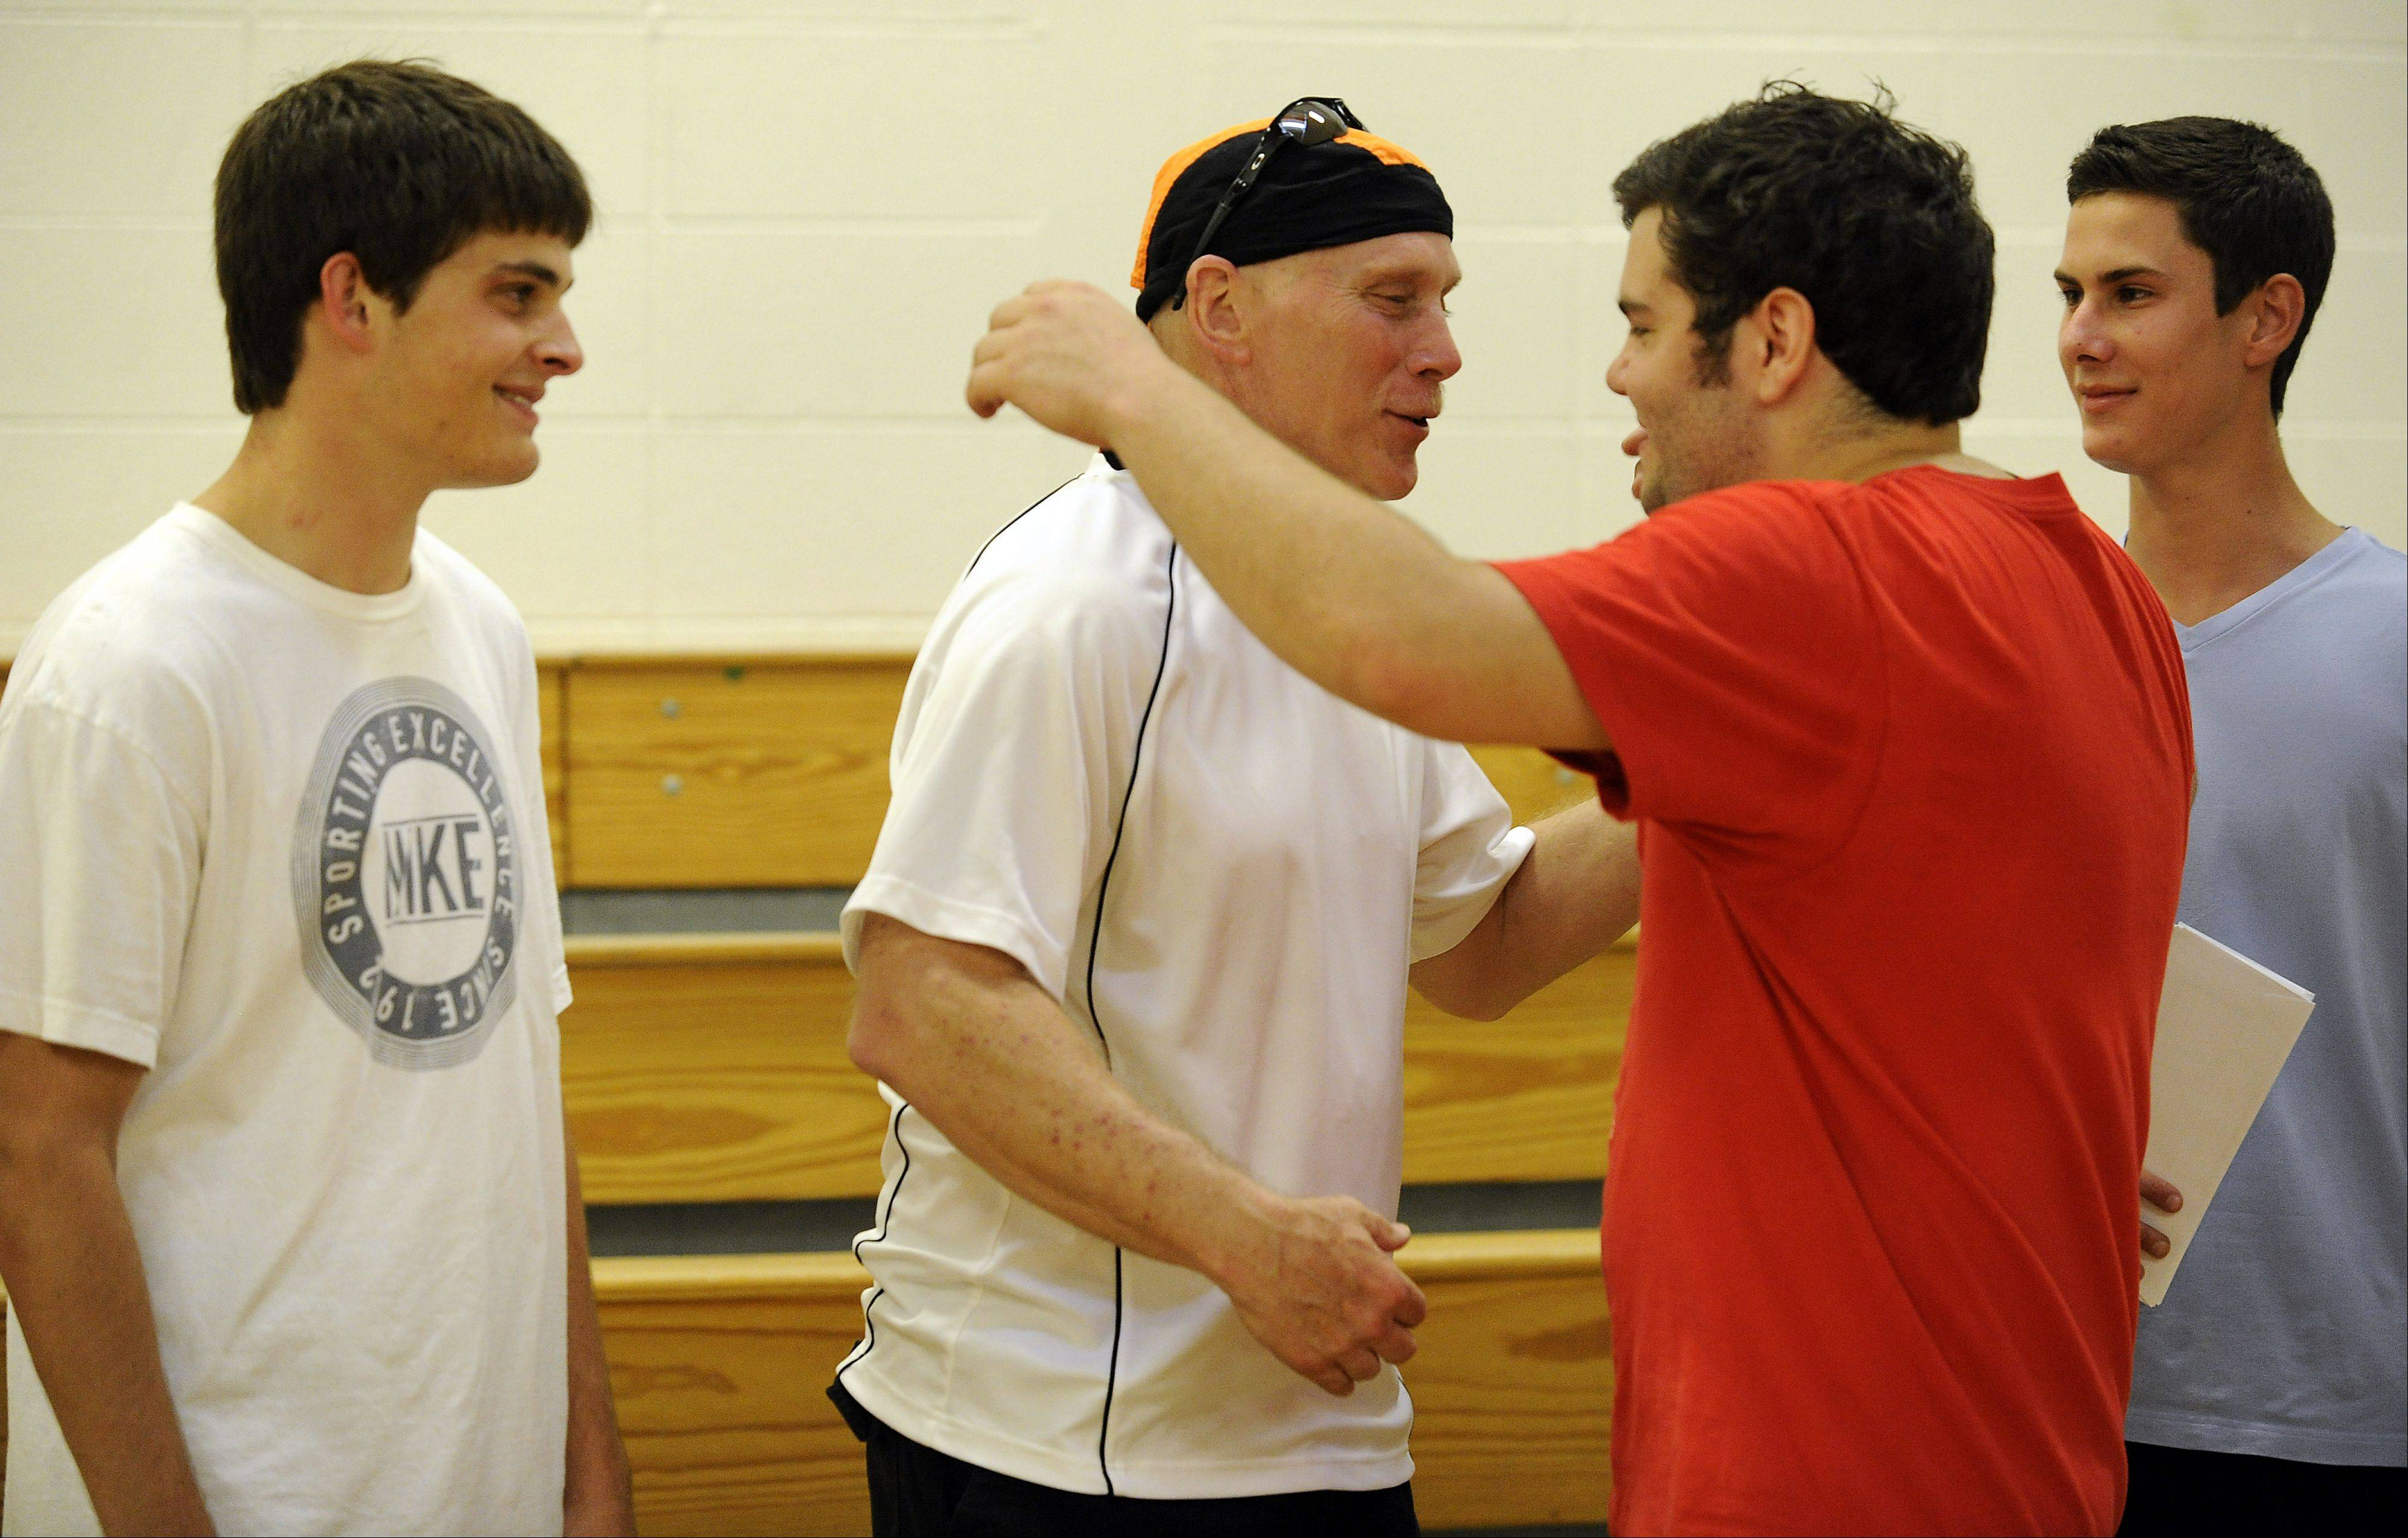 Brett O'Conner, 21, of Libertyville gives his former coach Randy Kuceyeski a big hug at the charity dodgeball game, to raise money for his throat cancer treatments. At left is Chris Jungmann, 20; at right is Sean Milbourne, 20, all former Libertyville High School graduates who organized the event.